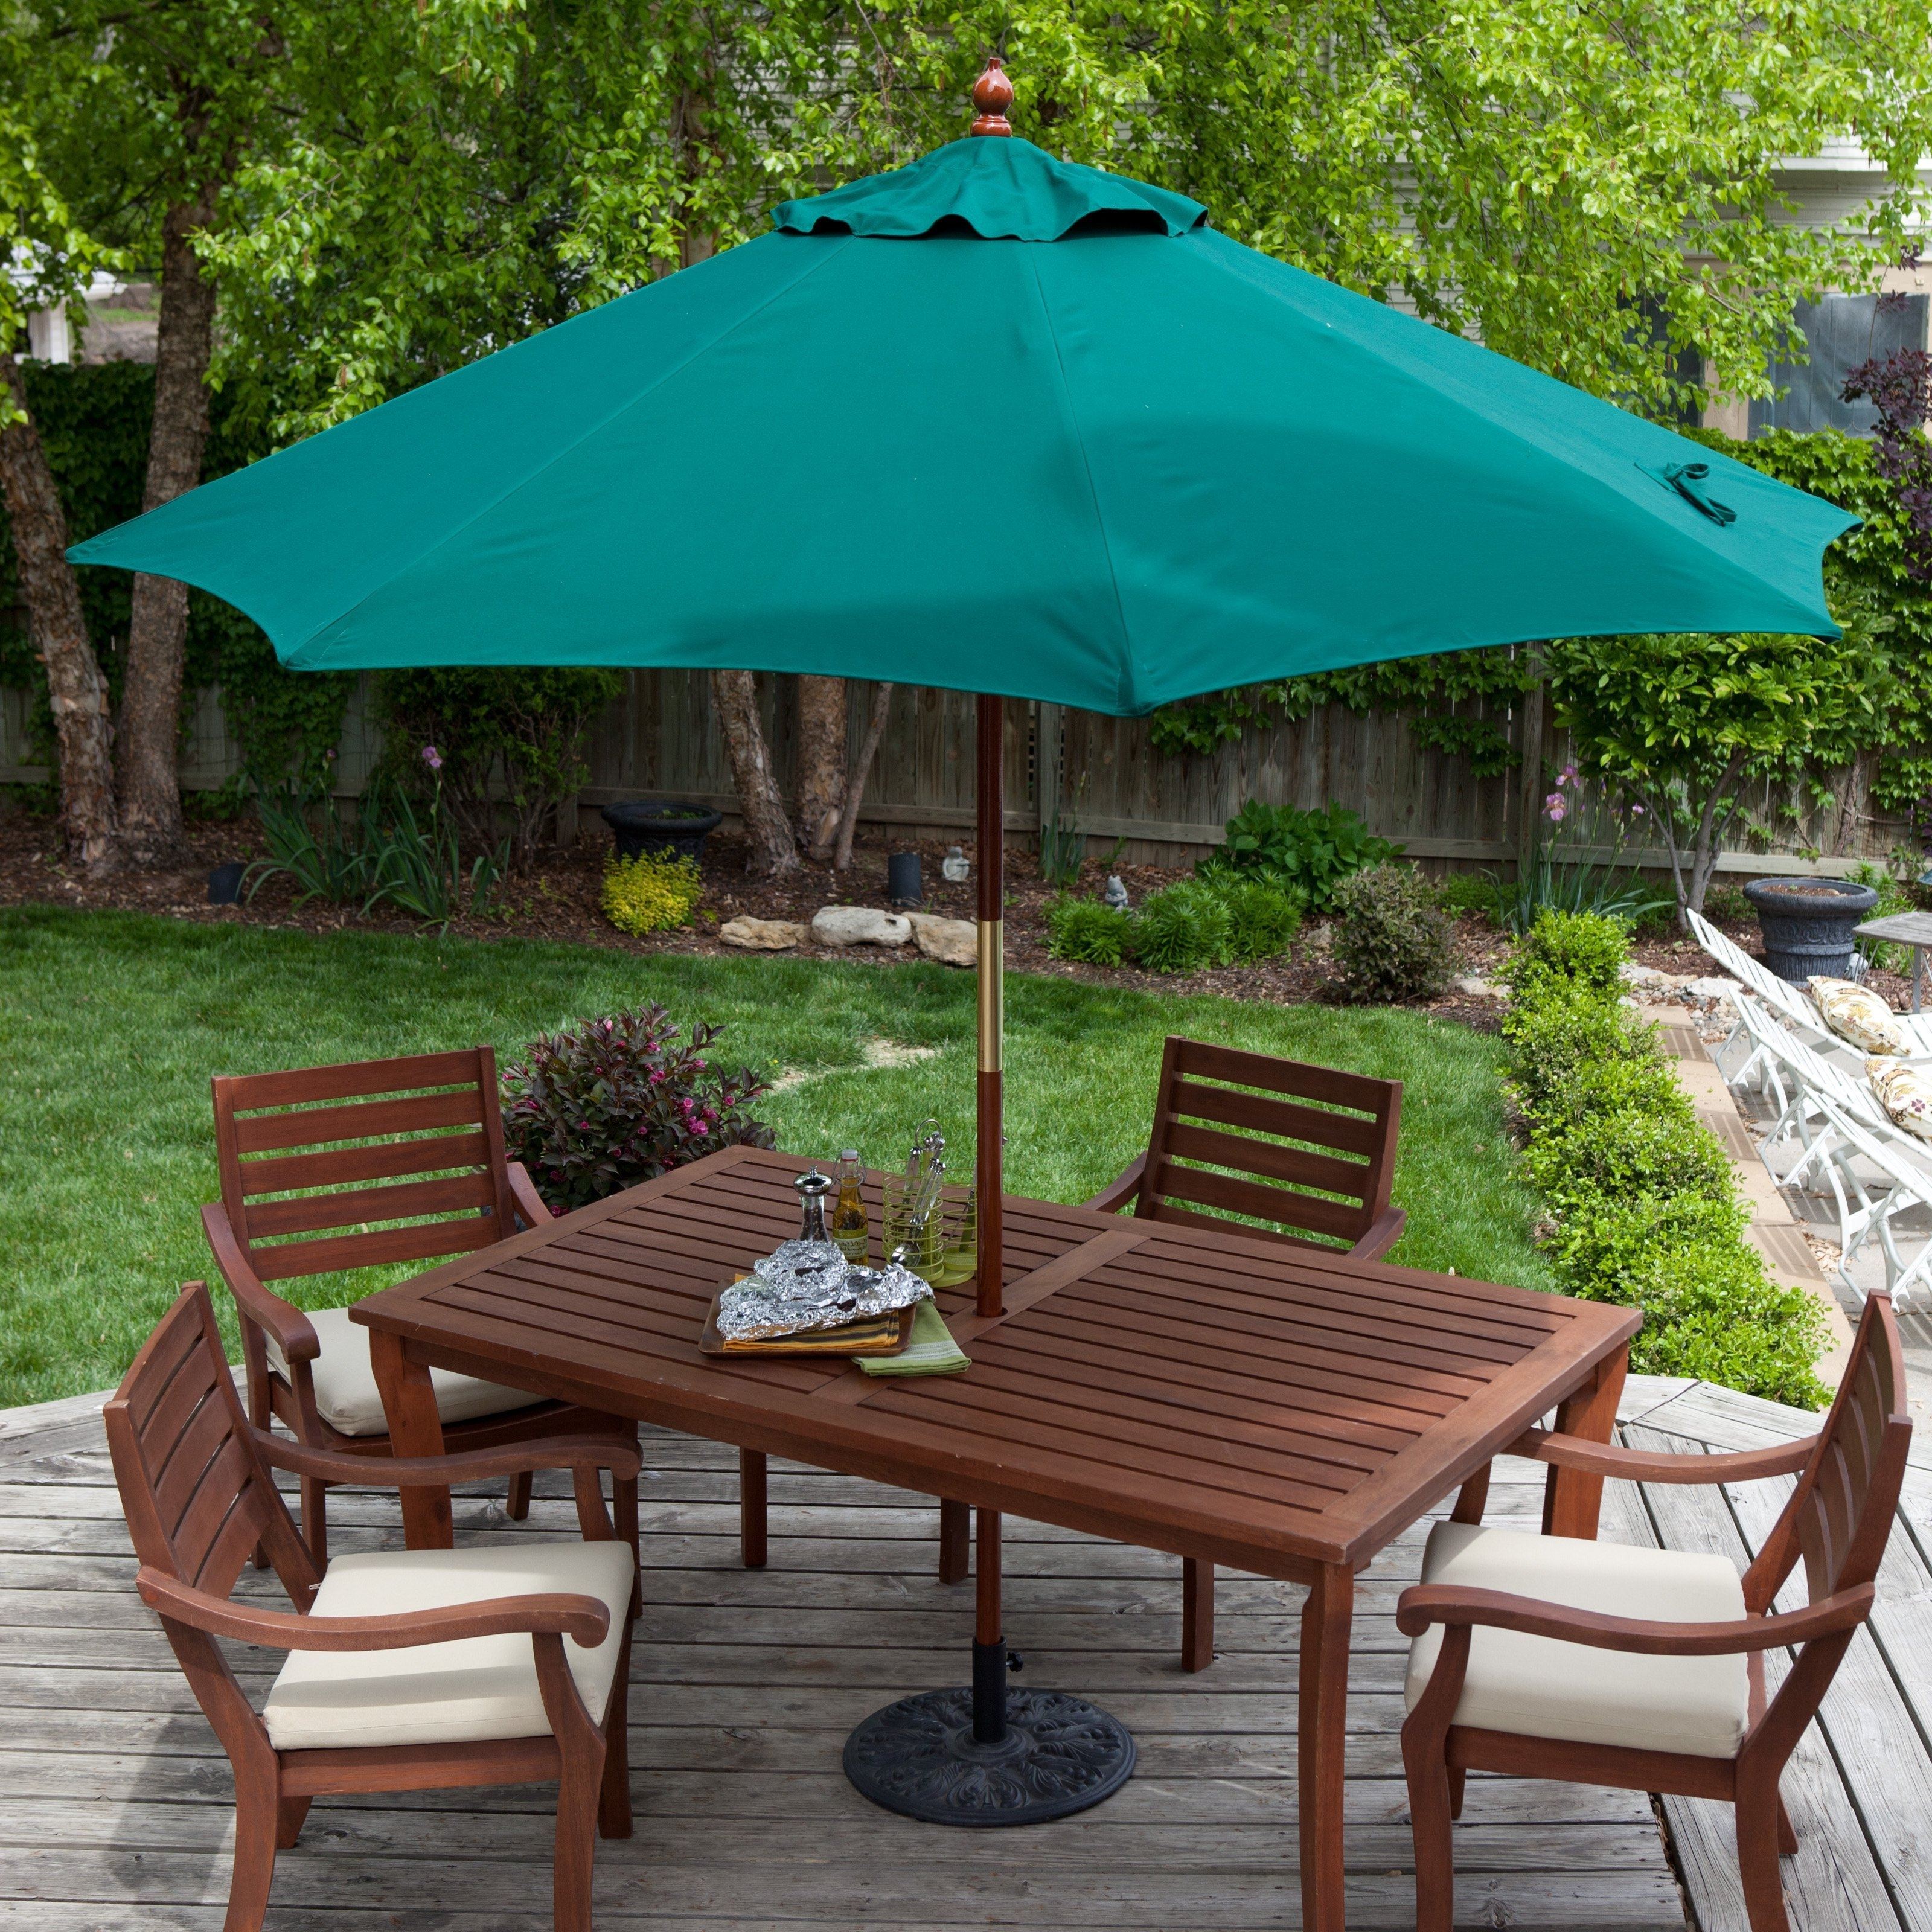 Elegant Patio Table With Umbrella Hole F65X In Fabulous Home Design Throughout Most Current Patio Tables With Umbrella Hole (View 2 of 20)